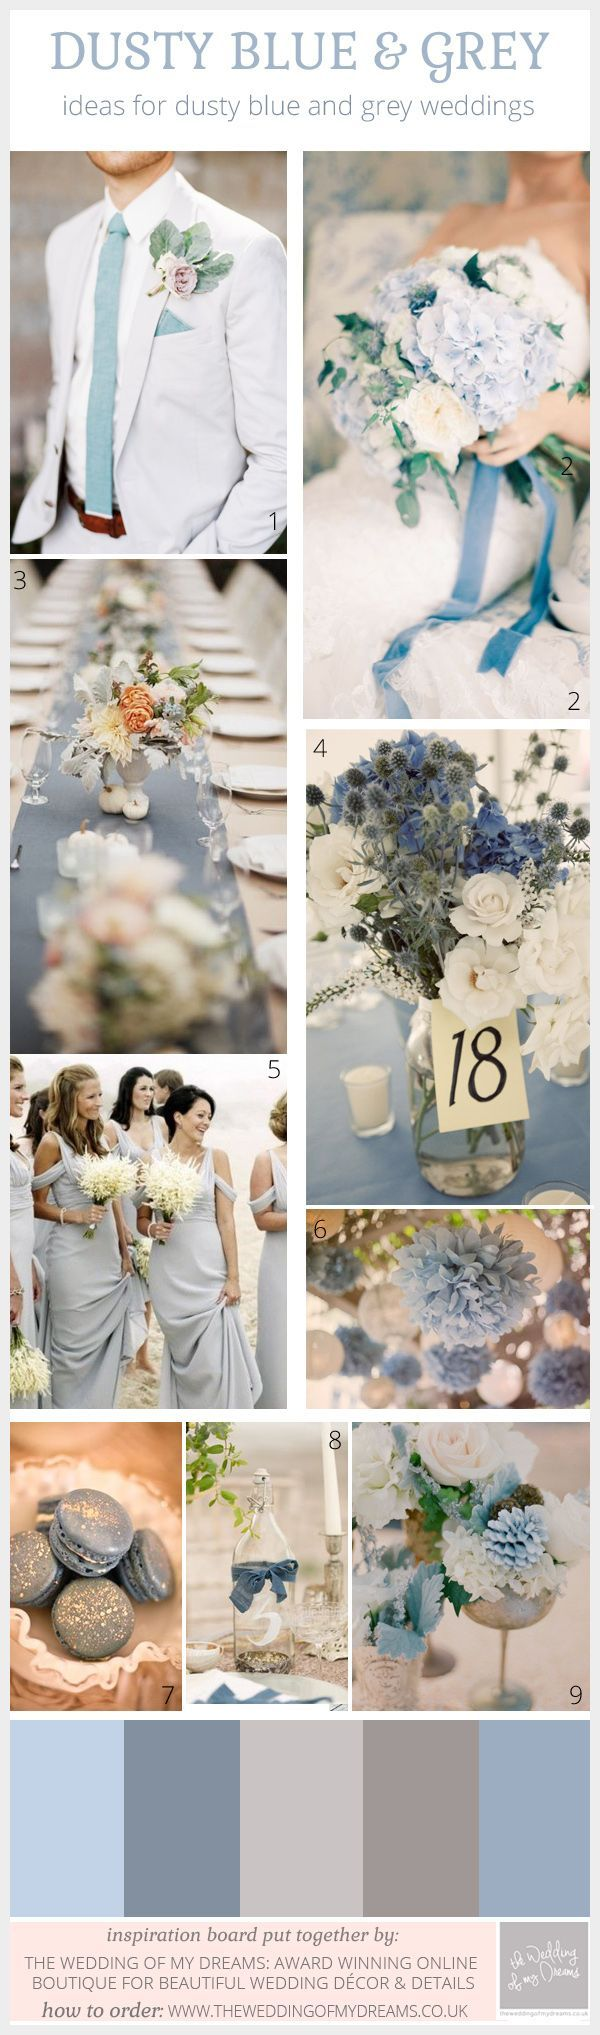 Dusty Blue And Grey Wedding Ideas & Inspiration